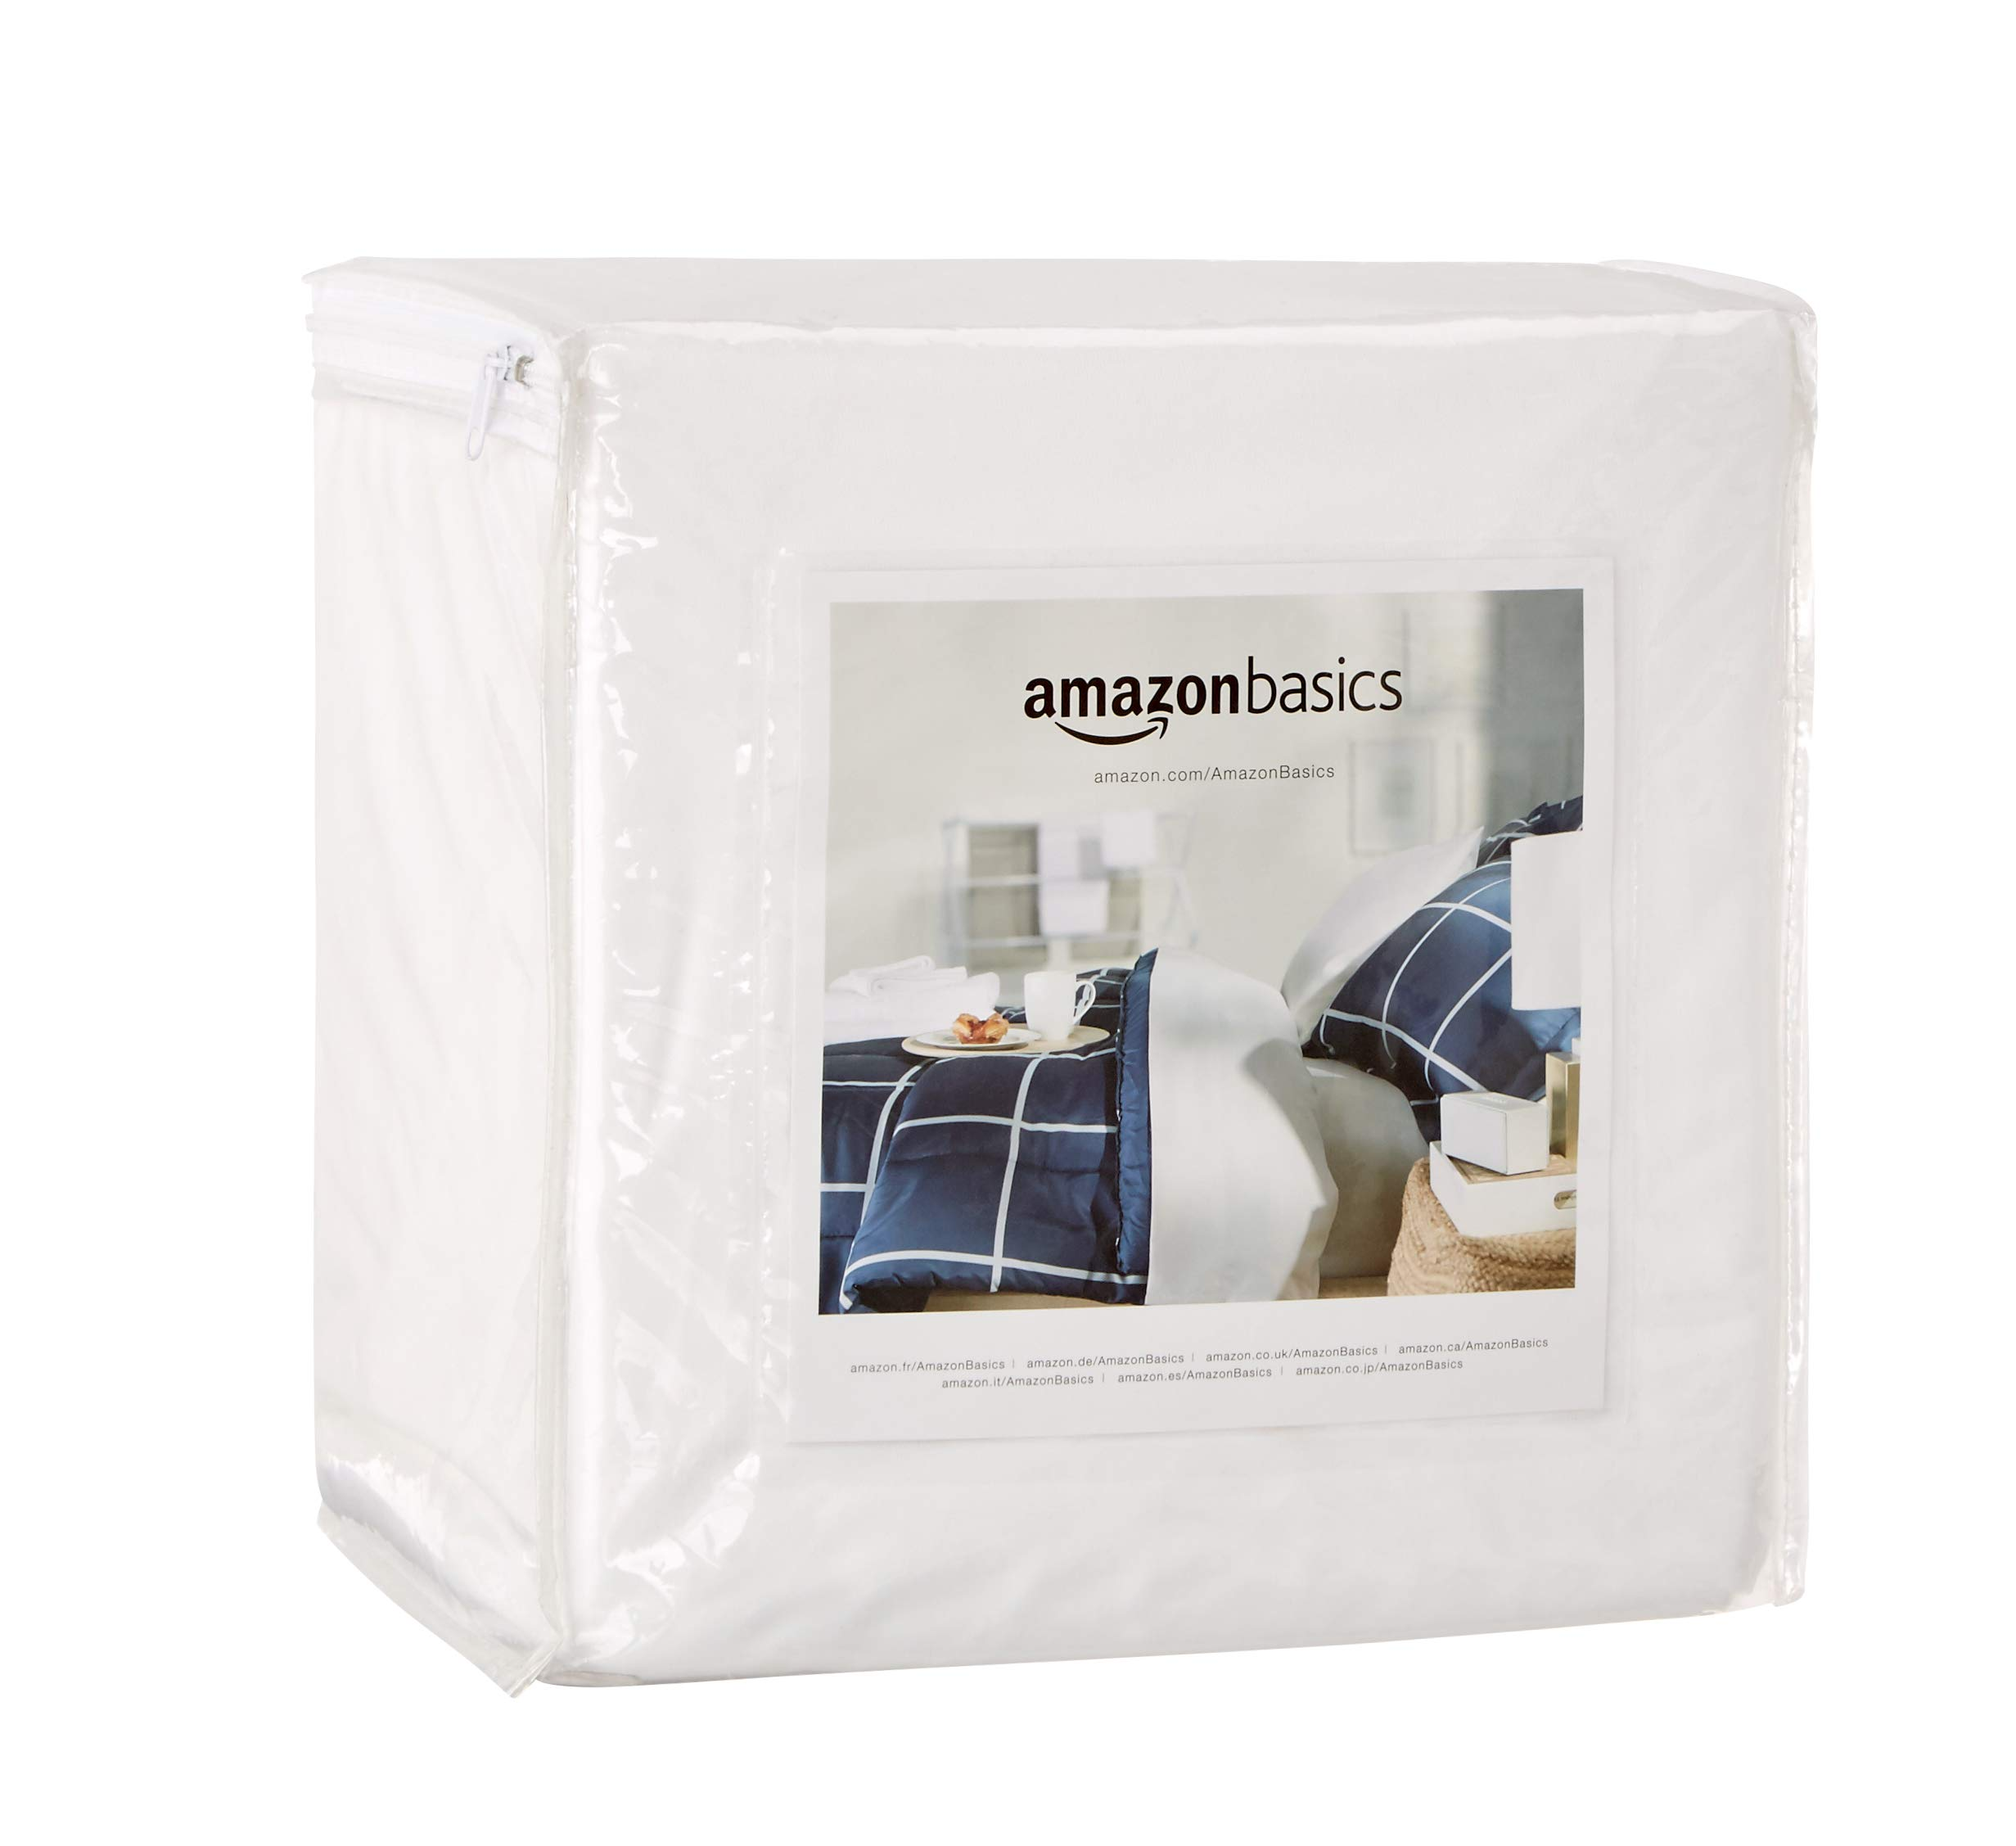 AmazonBasics Fully-Encased Waterproof Mattress Protector - Twin XL, Low Profile 9 to 12-Inch Depth